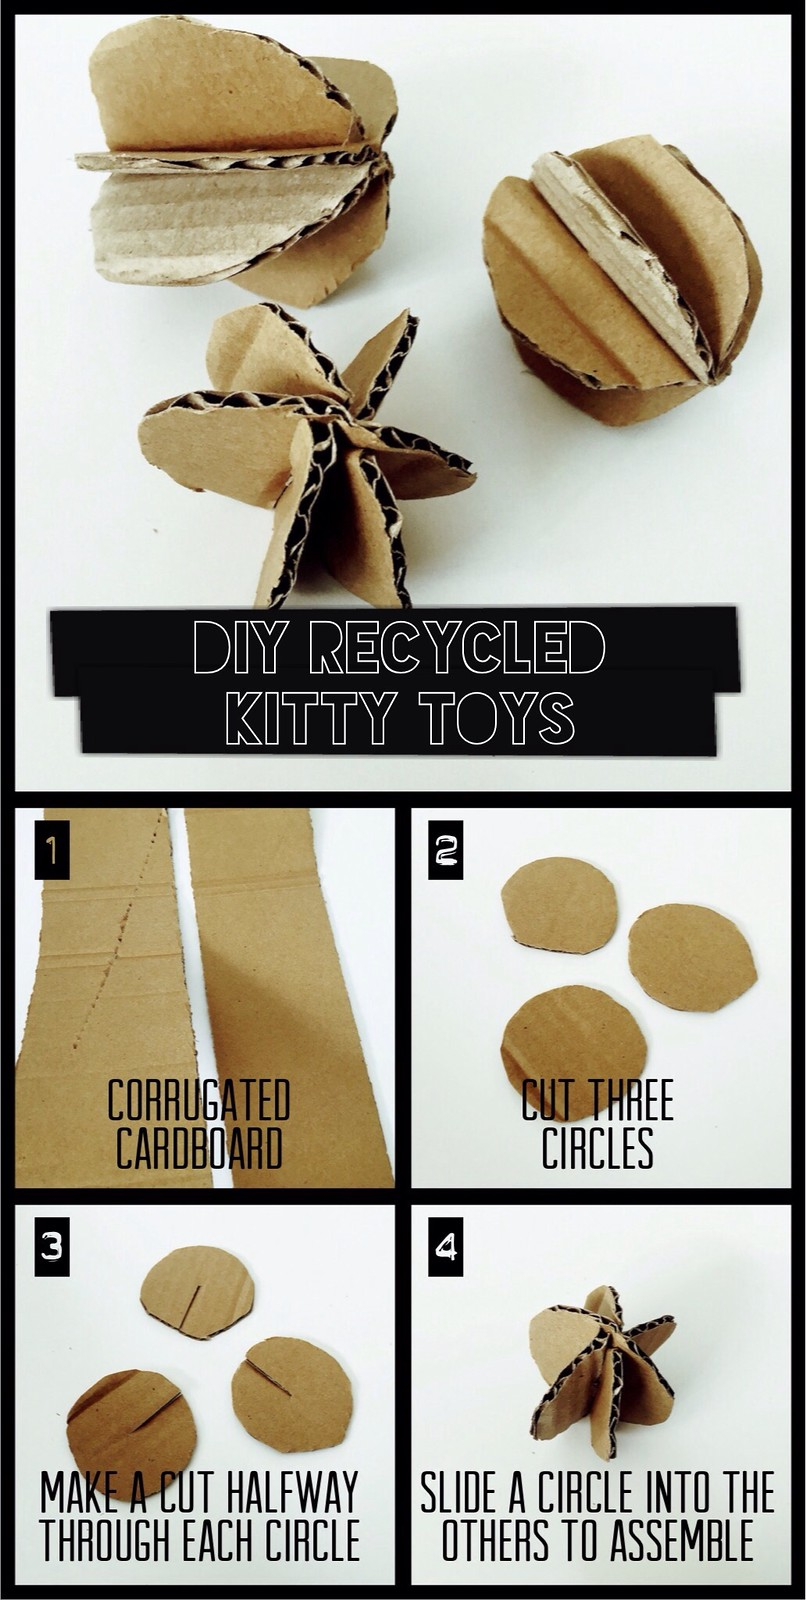 DIY Recycled Kitty Toys Tutorial